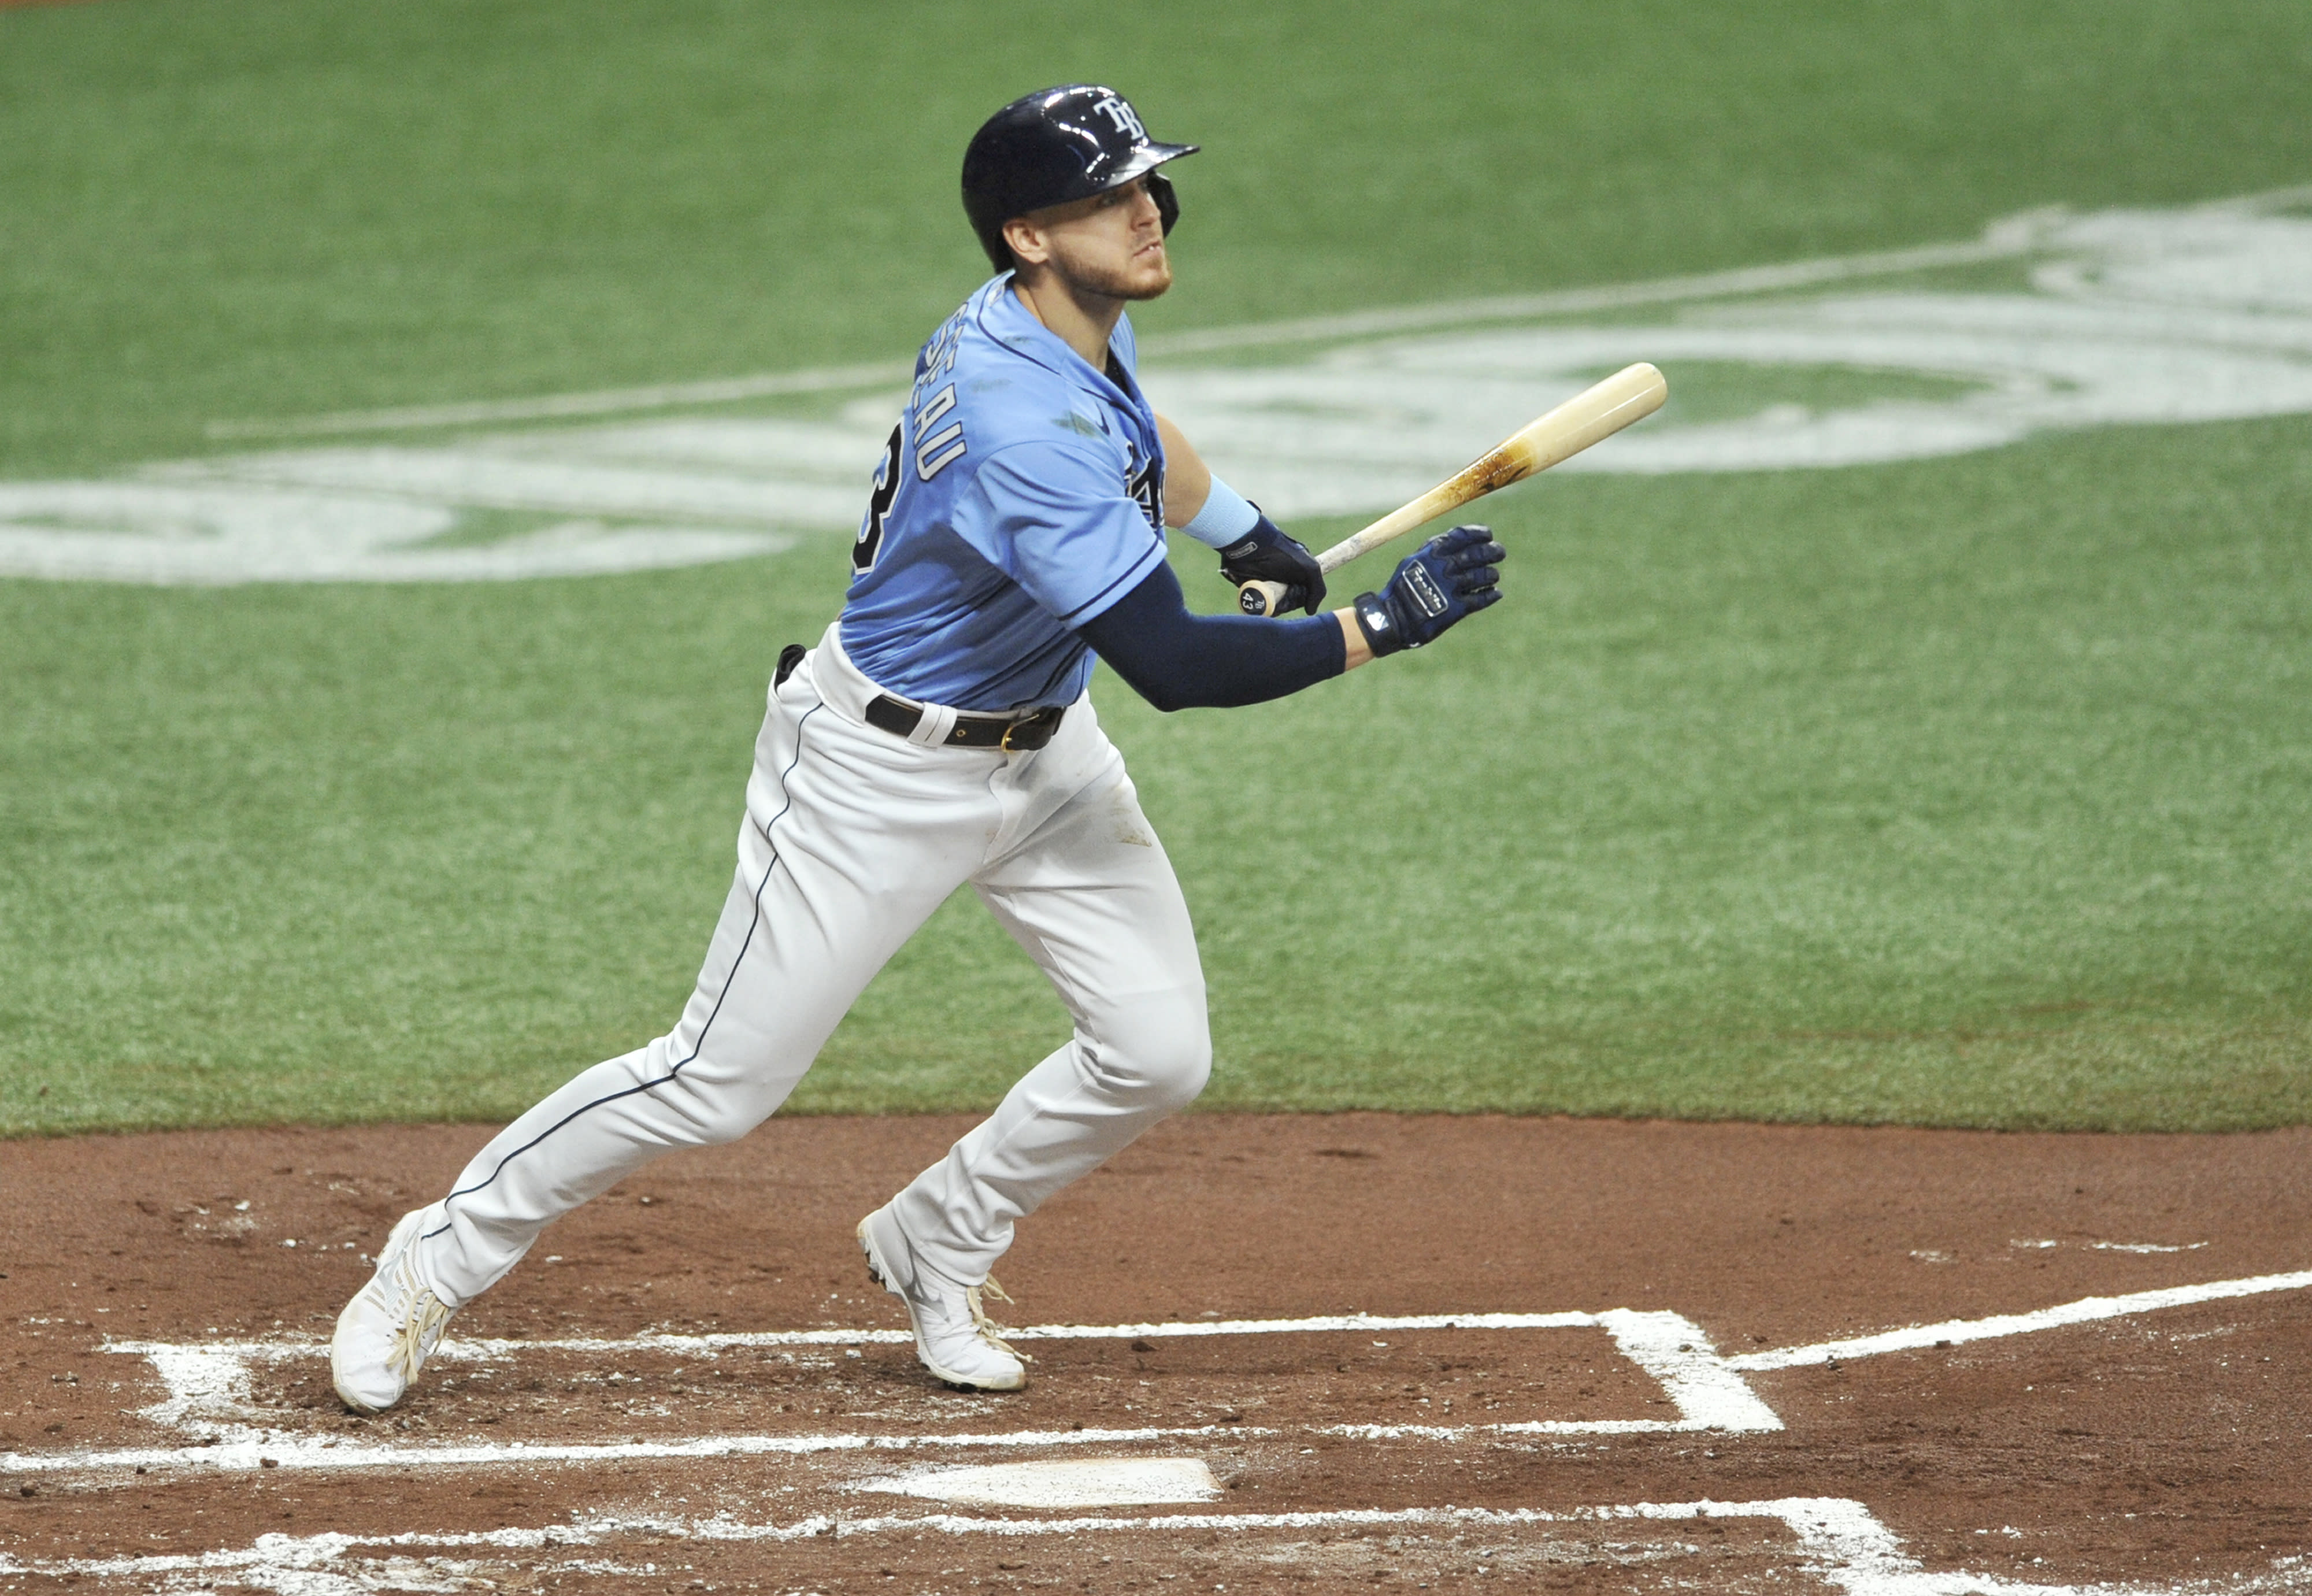 Tampa Bay Rays' Michael Brosseau hits an RBI-double off Boston Red Sox starter Martin Perez during the first inning of a baseball game Sunday, Sept. 13, 2020, in St. Petersburg, Fla. (AP Photo/Steve Nesius)